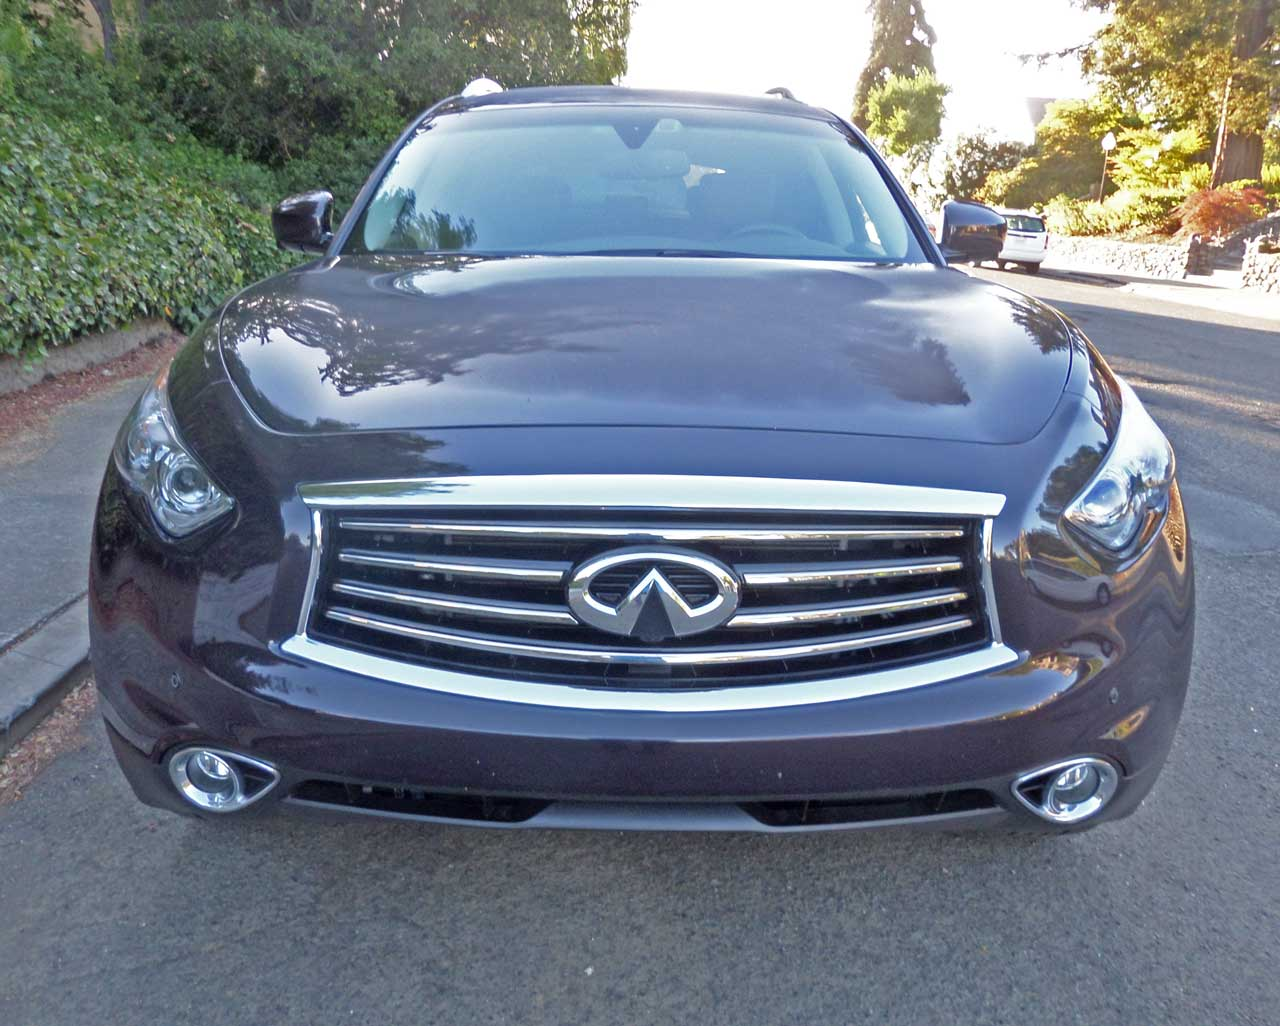 2014 infiniti qx70 awd test drive our auto expert. Black Bedroom Furniture Sets. Home Design Ideas